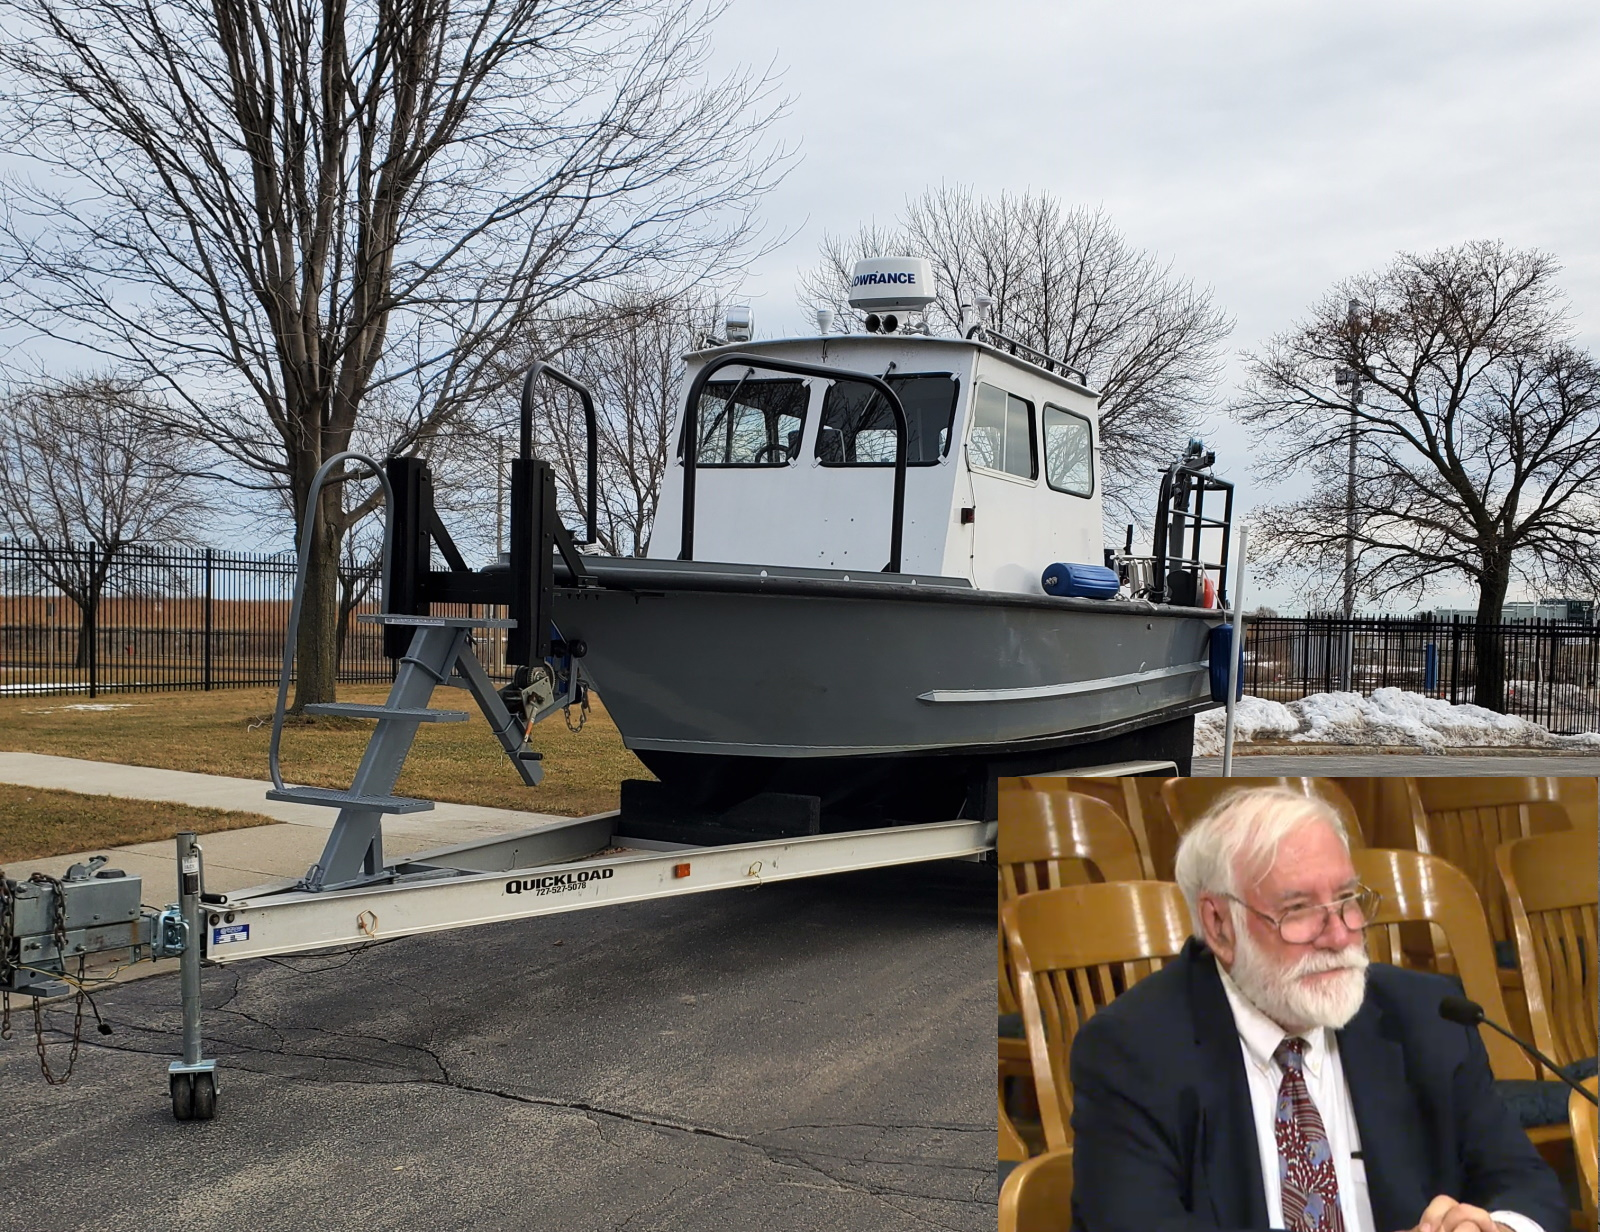 """Port Renaming Boat """"Larry Sullivan"""" After 53-Year City Employee"""